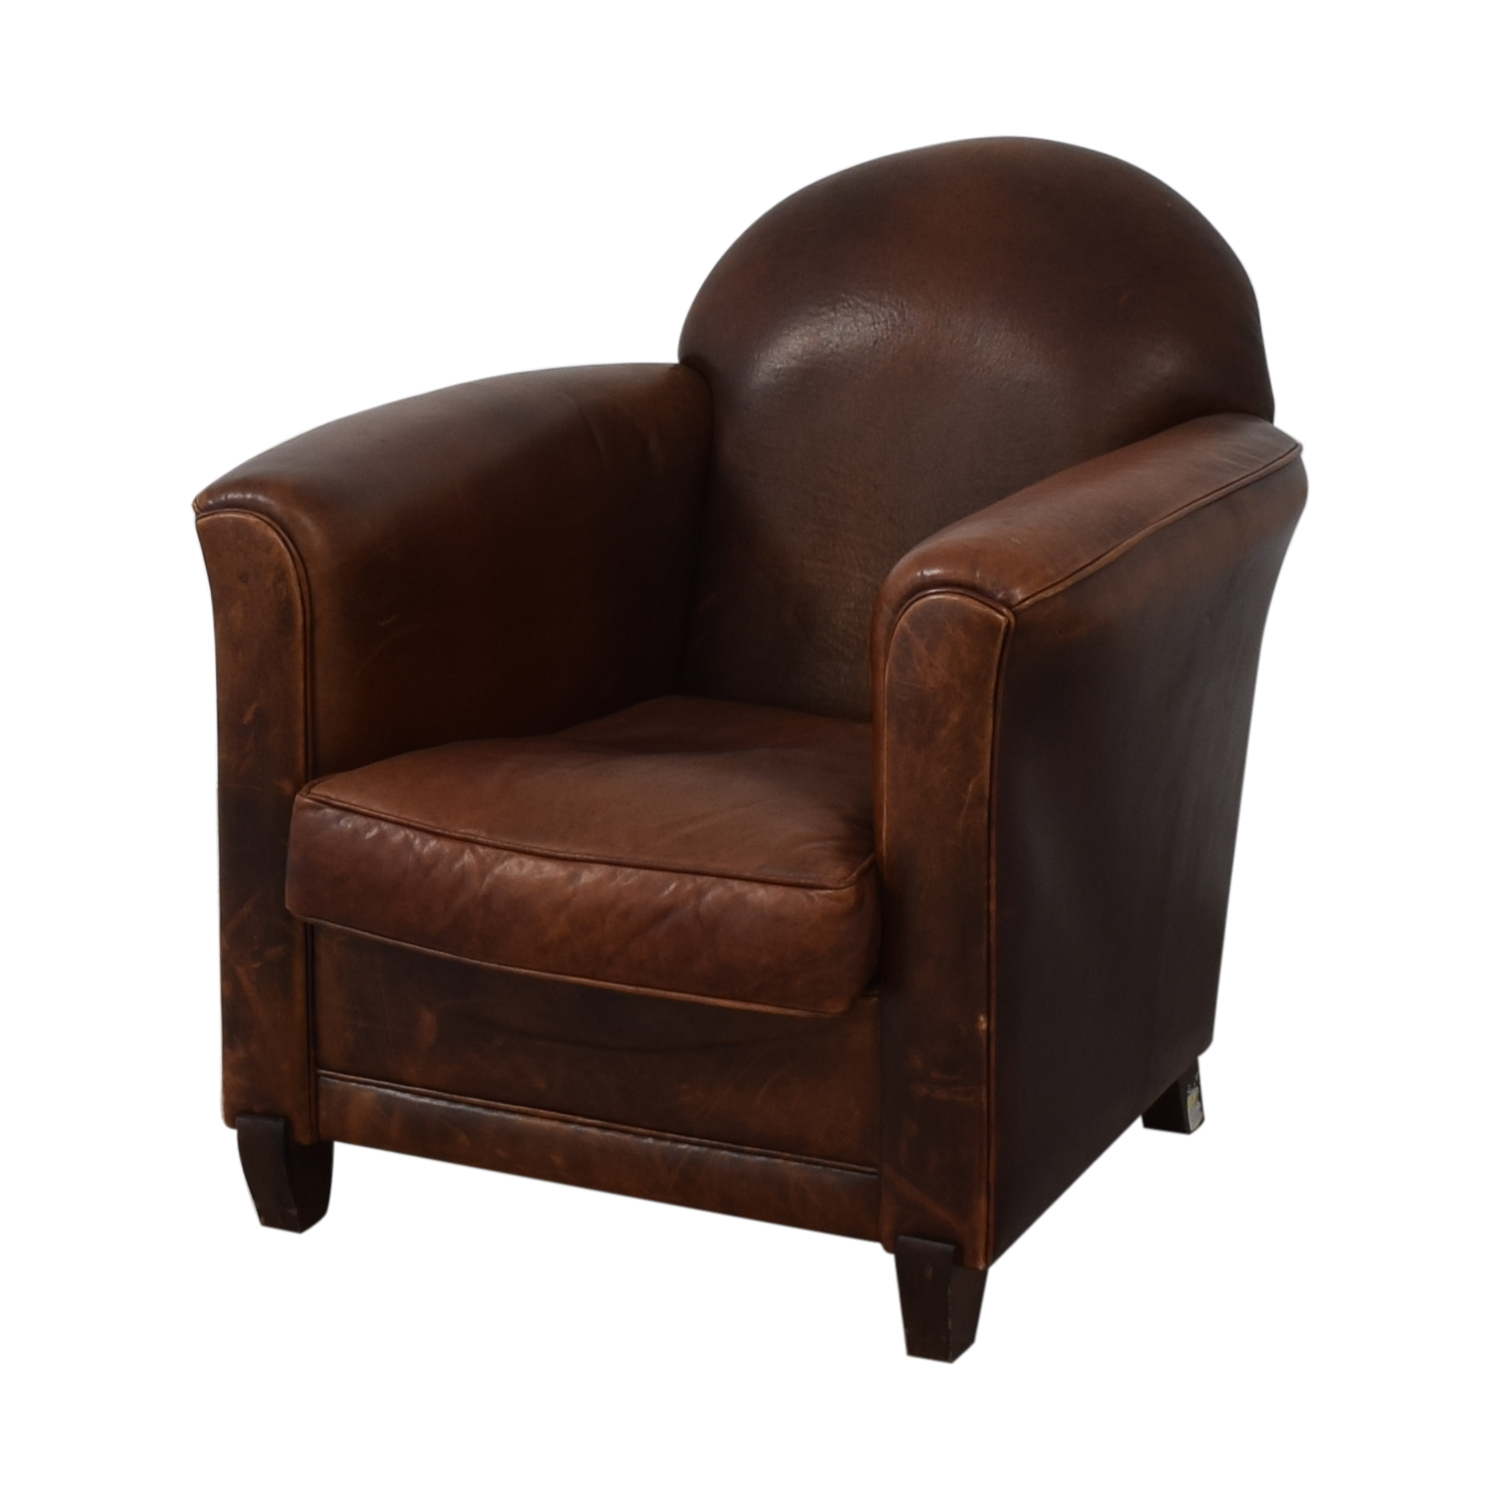 French Leather Club Chair discount